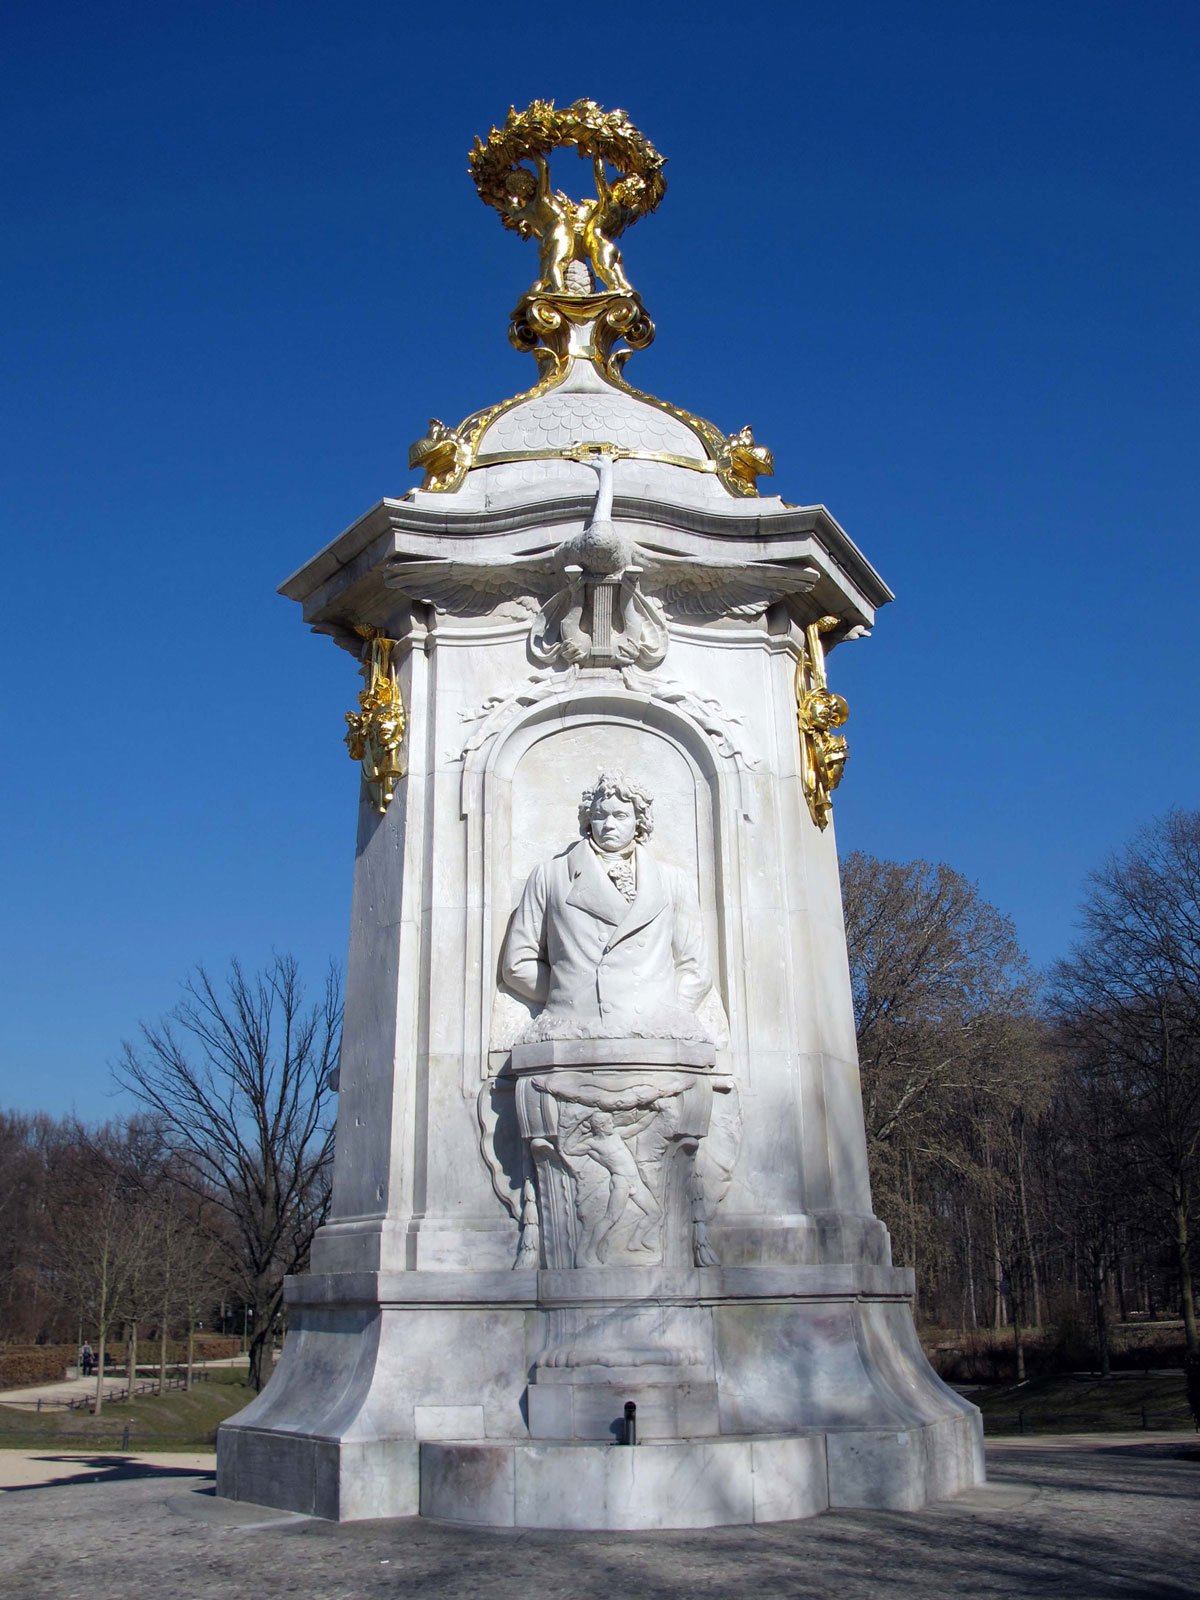 Composer Memorial Statue showing Beethoven